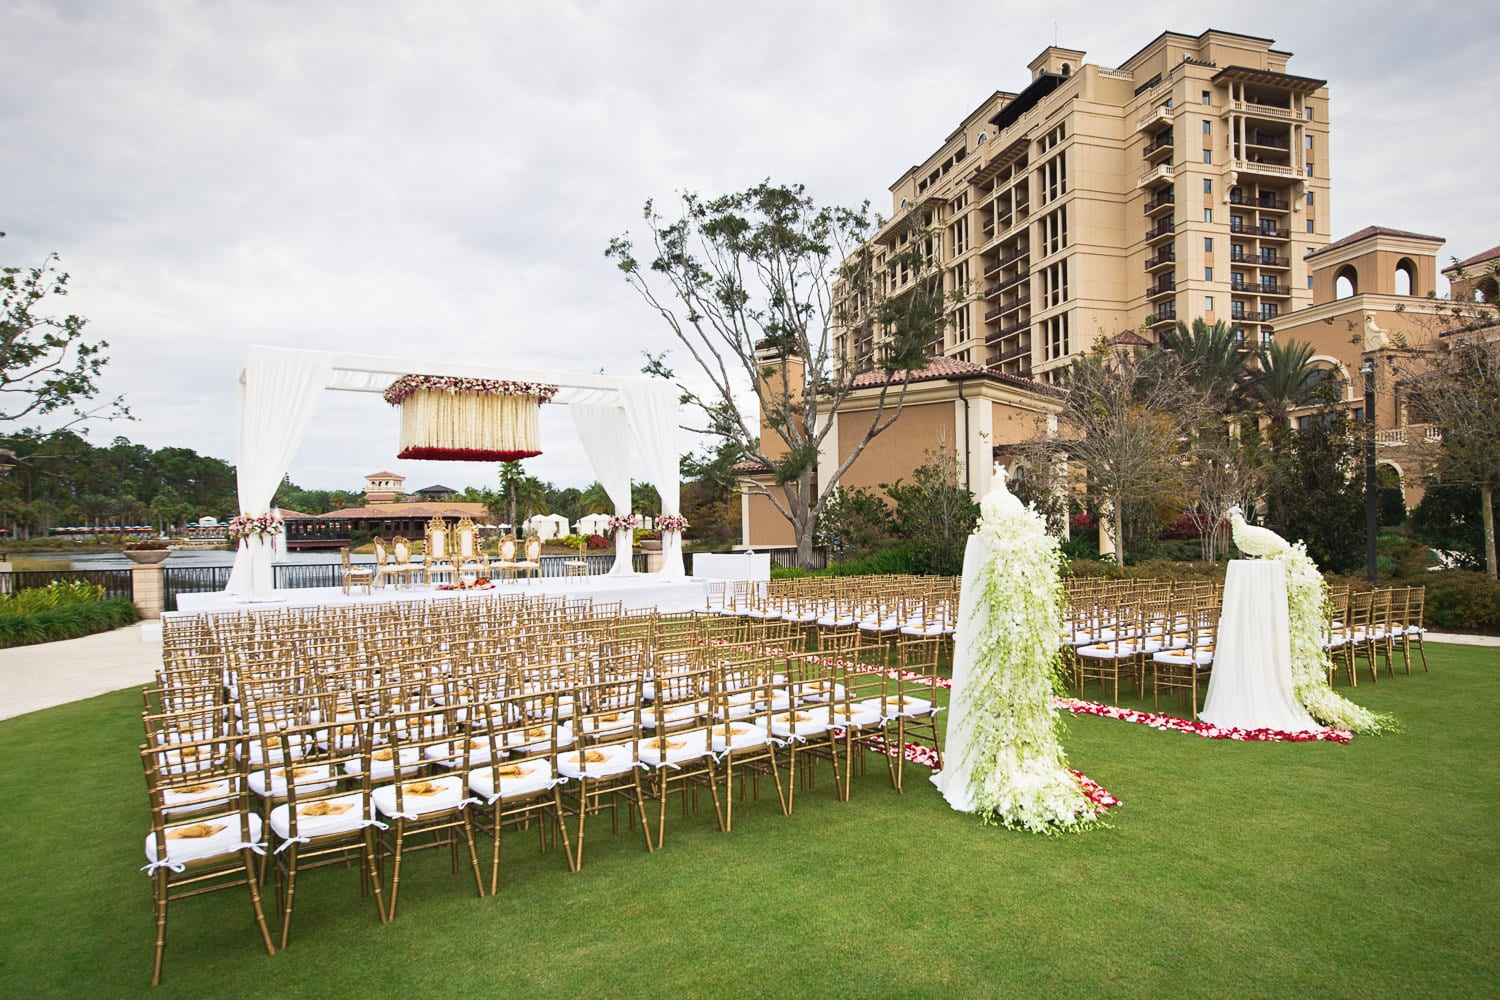 four-seasons-orlando-wedding-33.jpg